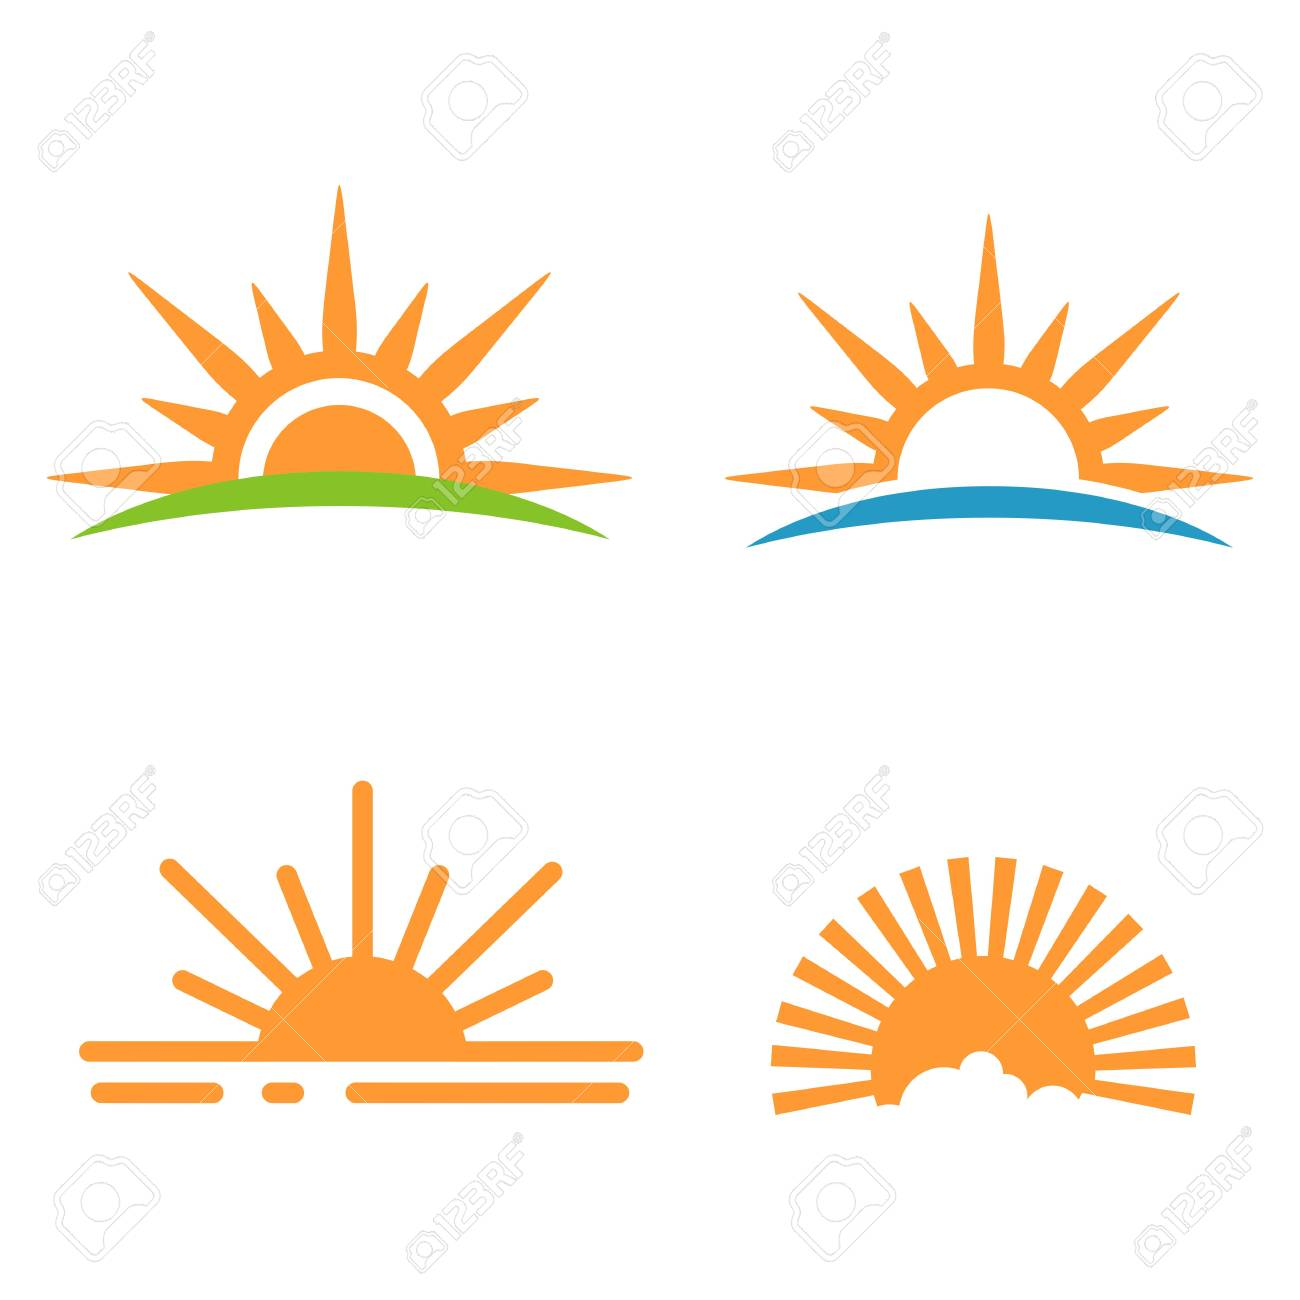 sunrise icon sunset icon vector illustration royalty free cliparts vectors and stock illustration image 94117648 123rf com